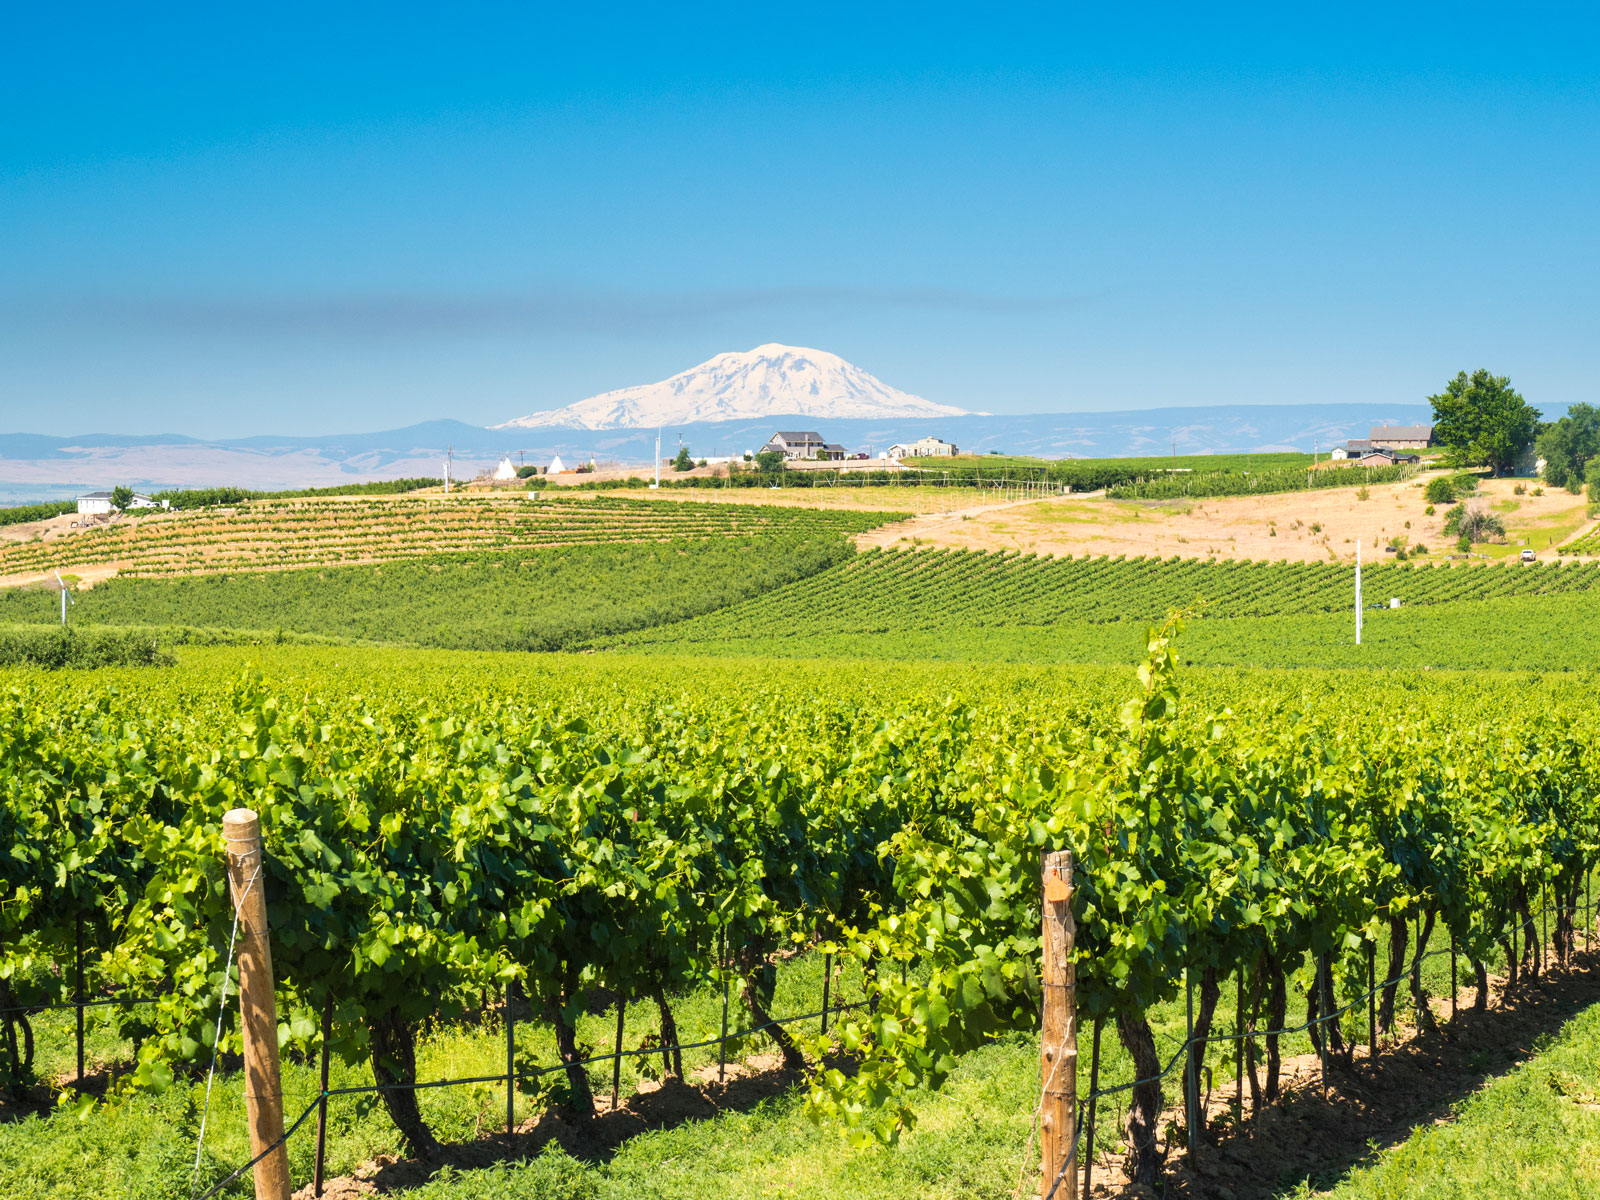 Washington Has Over 1,000 Wineries, and It's Just Getting Started